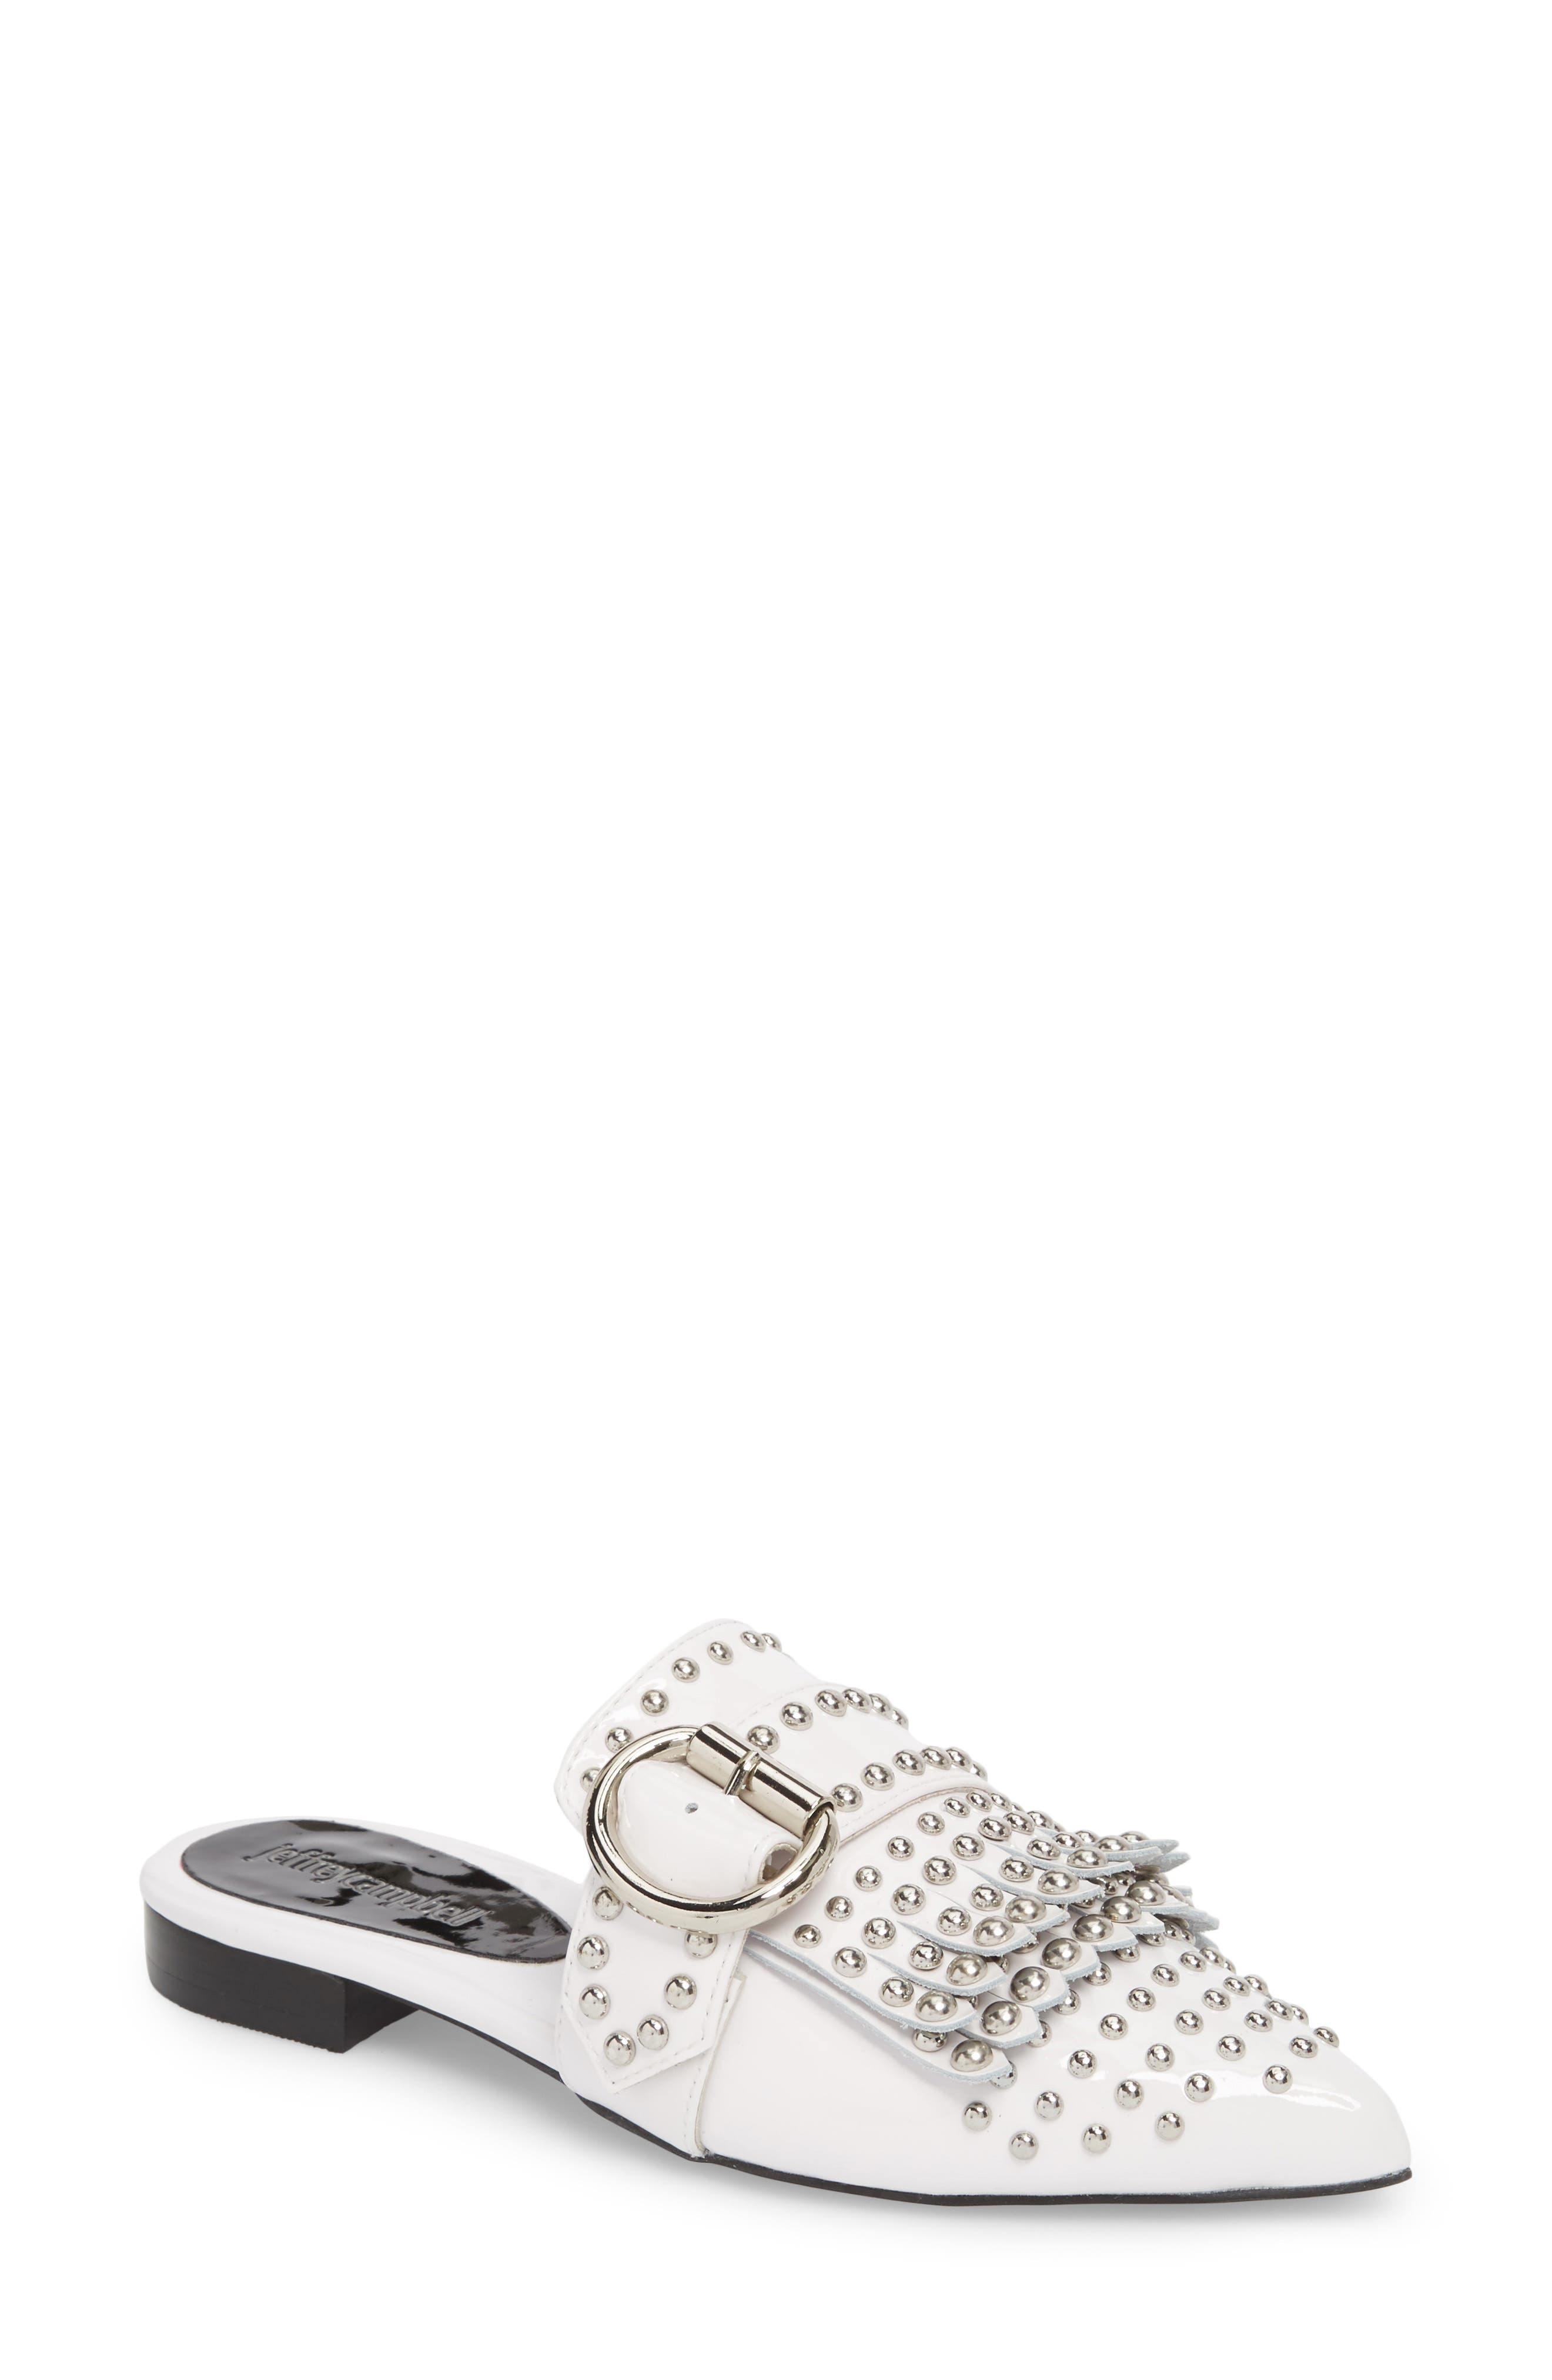 Daniel Studded Loafer Mule,                         Main,                         color, White Patent